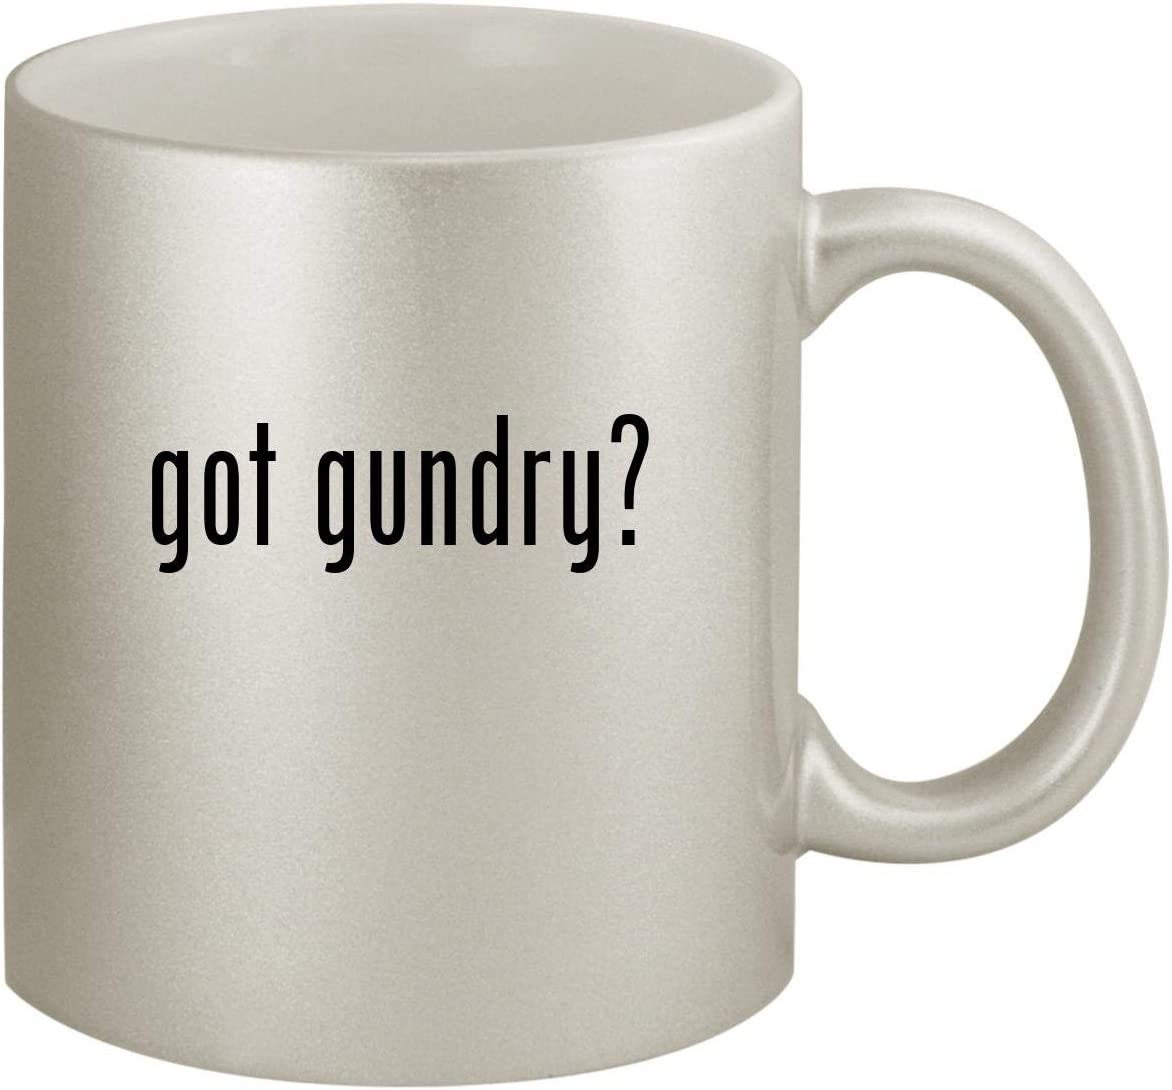 got gundry? - Ceramic 11oz Silver Coffee Mug, Silver